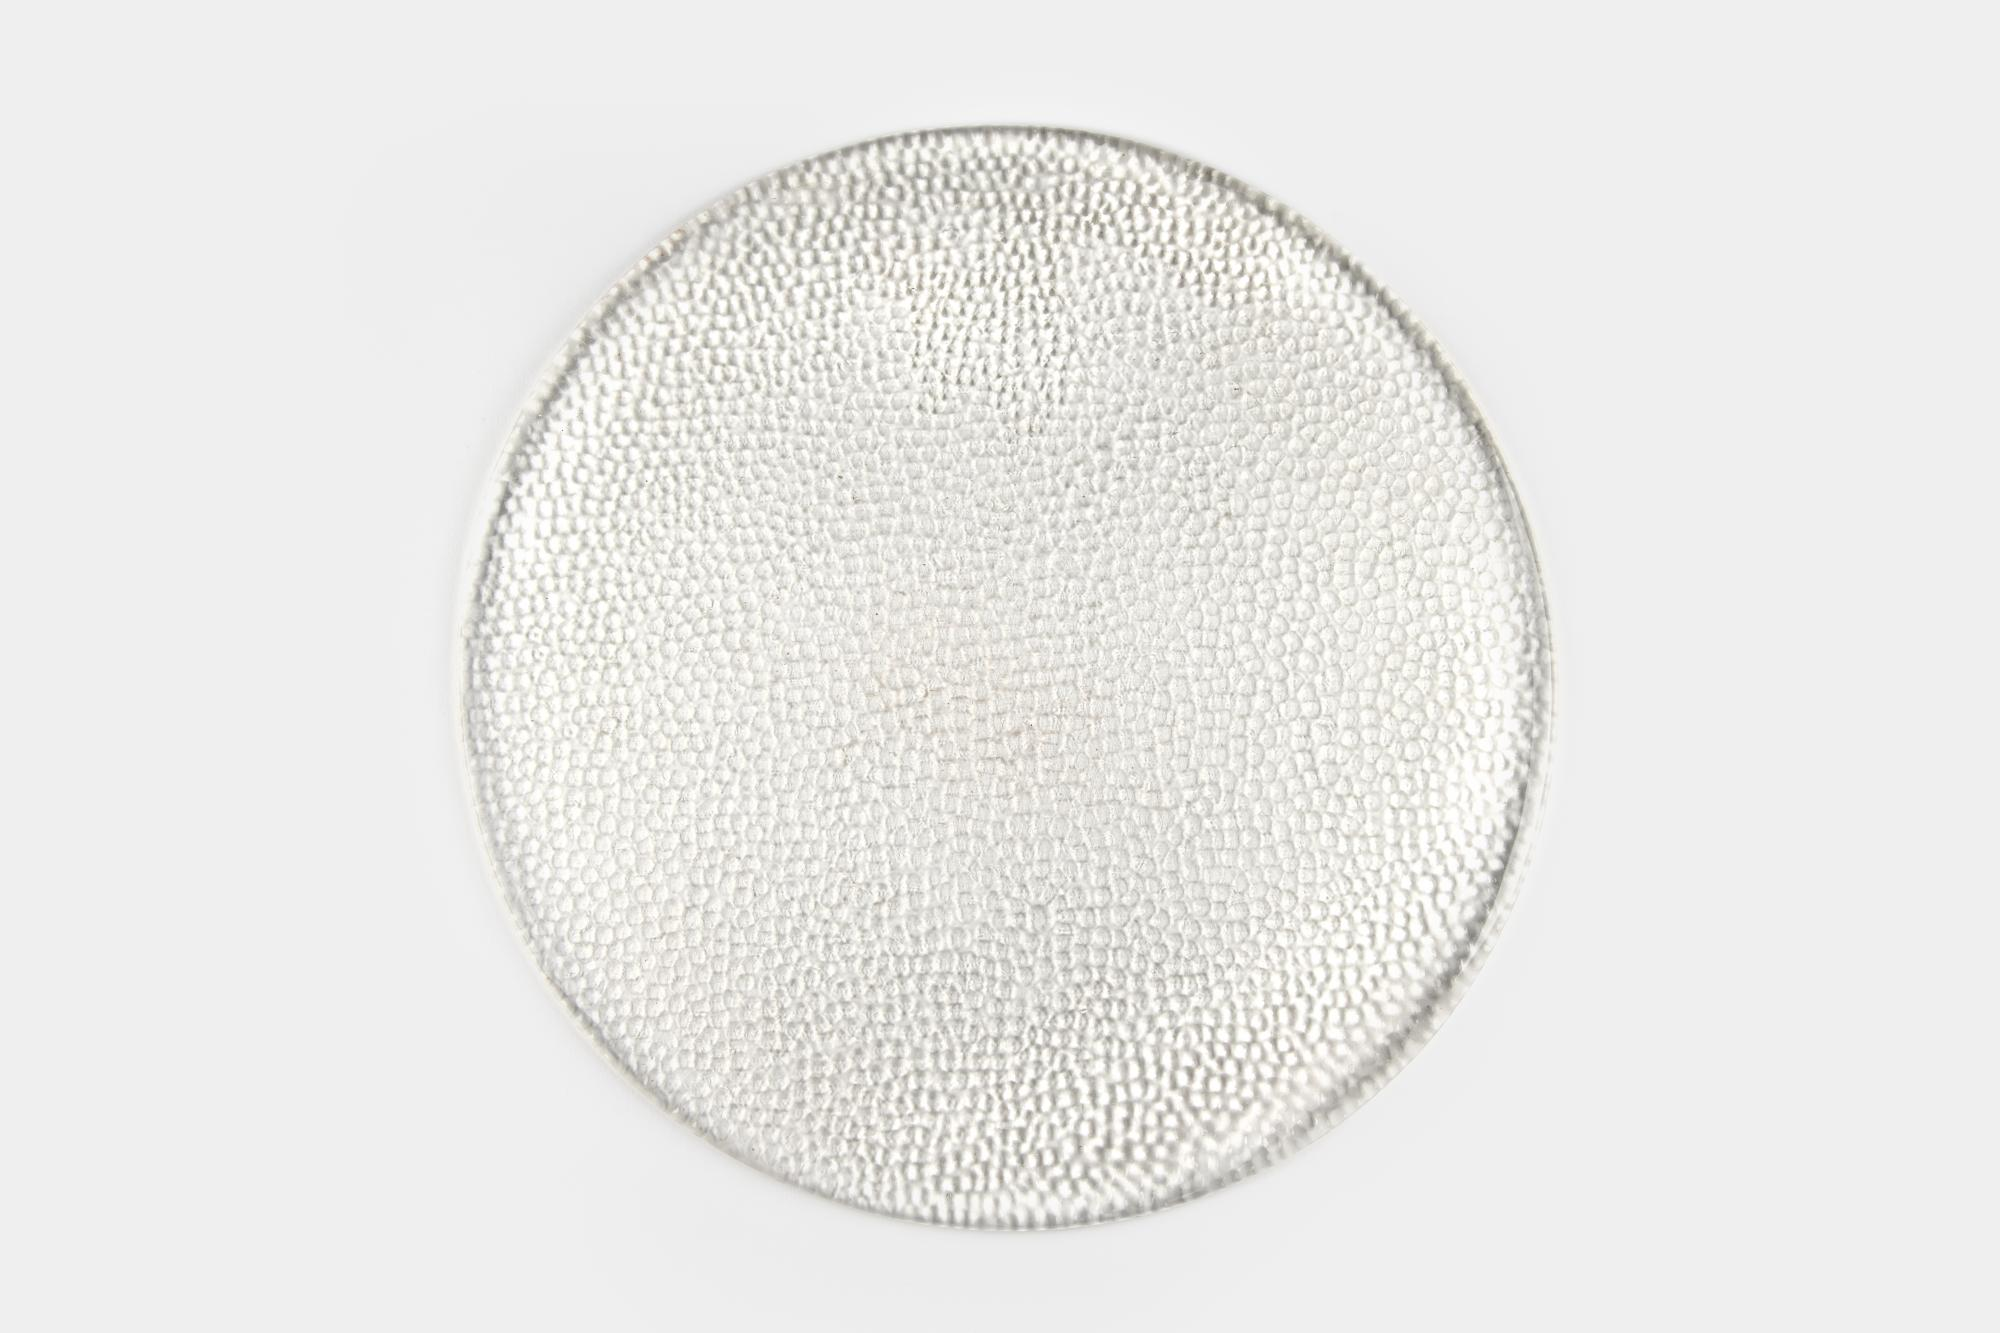 Flat bubble glass charger - Image 1